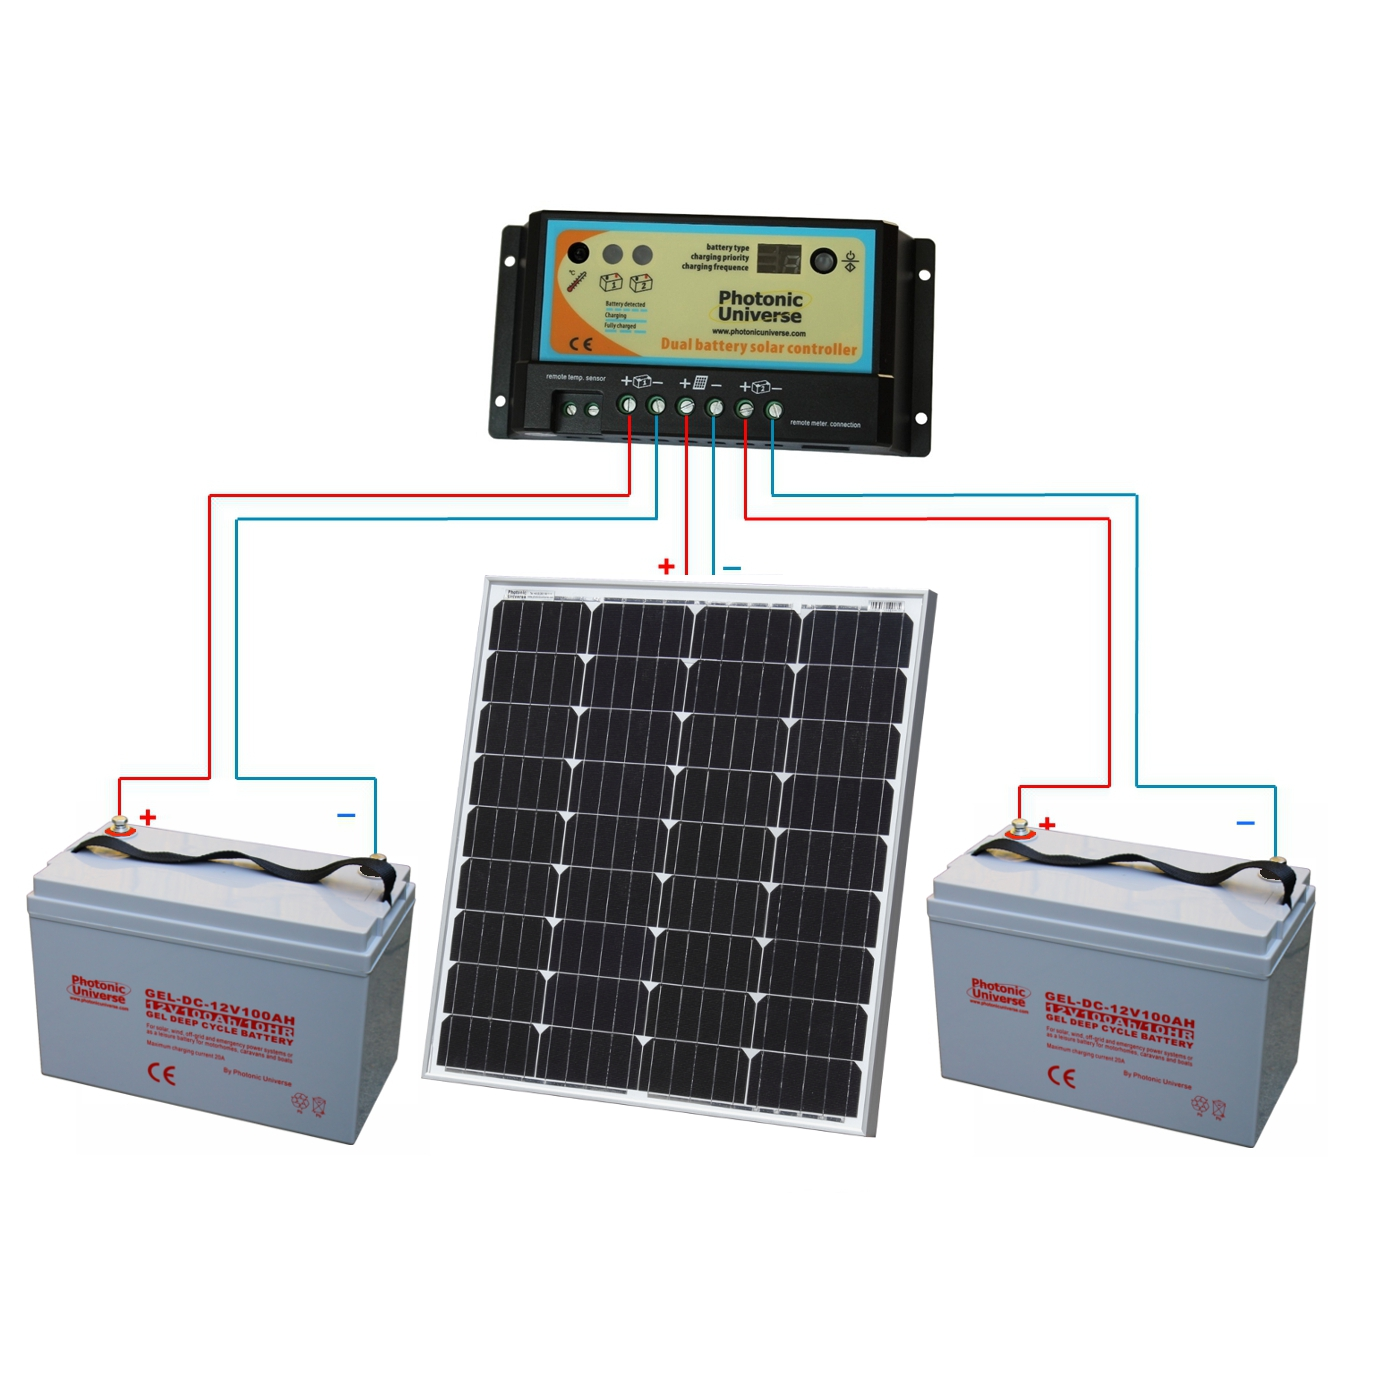 80W_DB_kit_connection_scheme 12v solar panels charging kits for caravans, motorhomes, boats 12v solar panel wiring diagram at gsmx.co